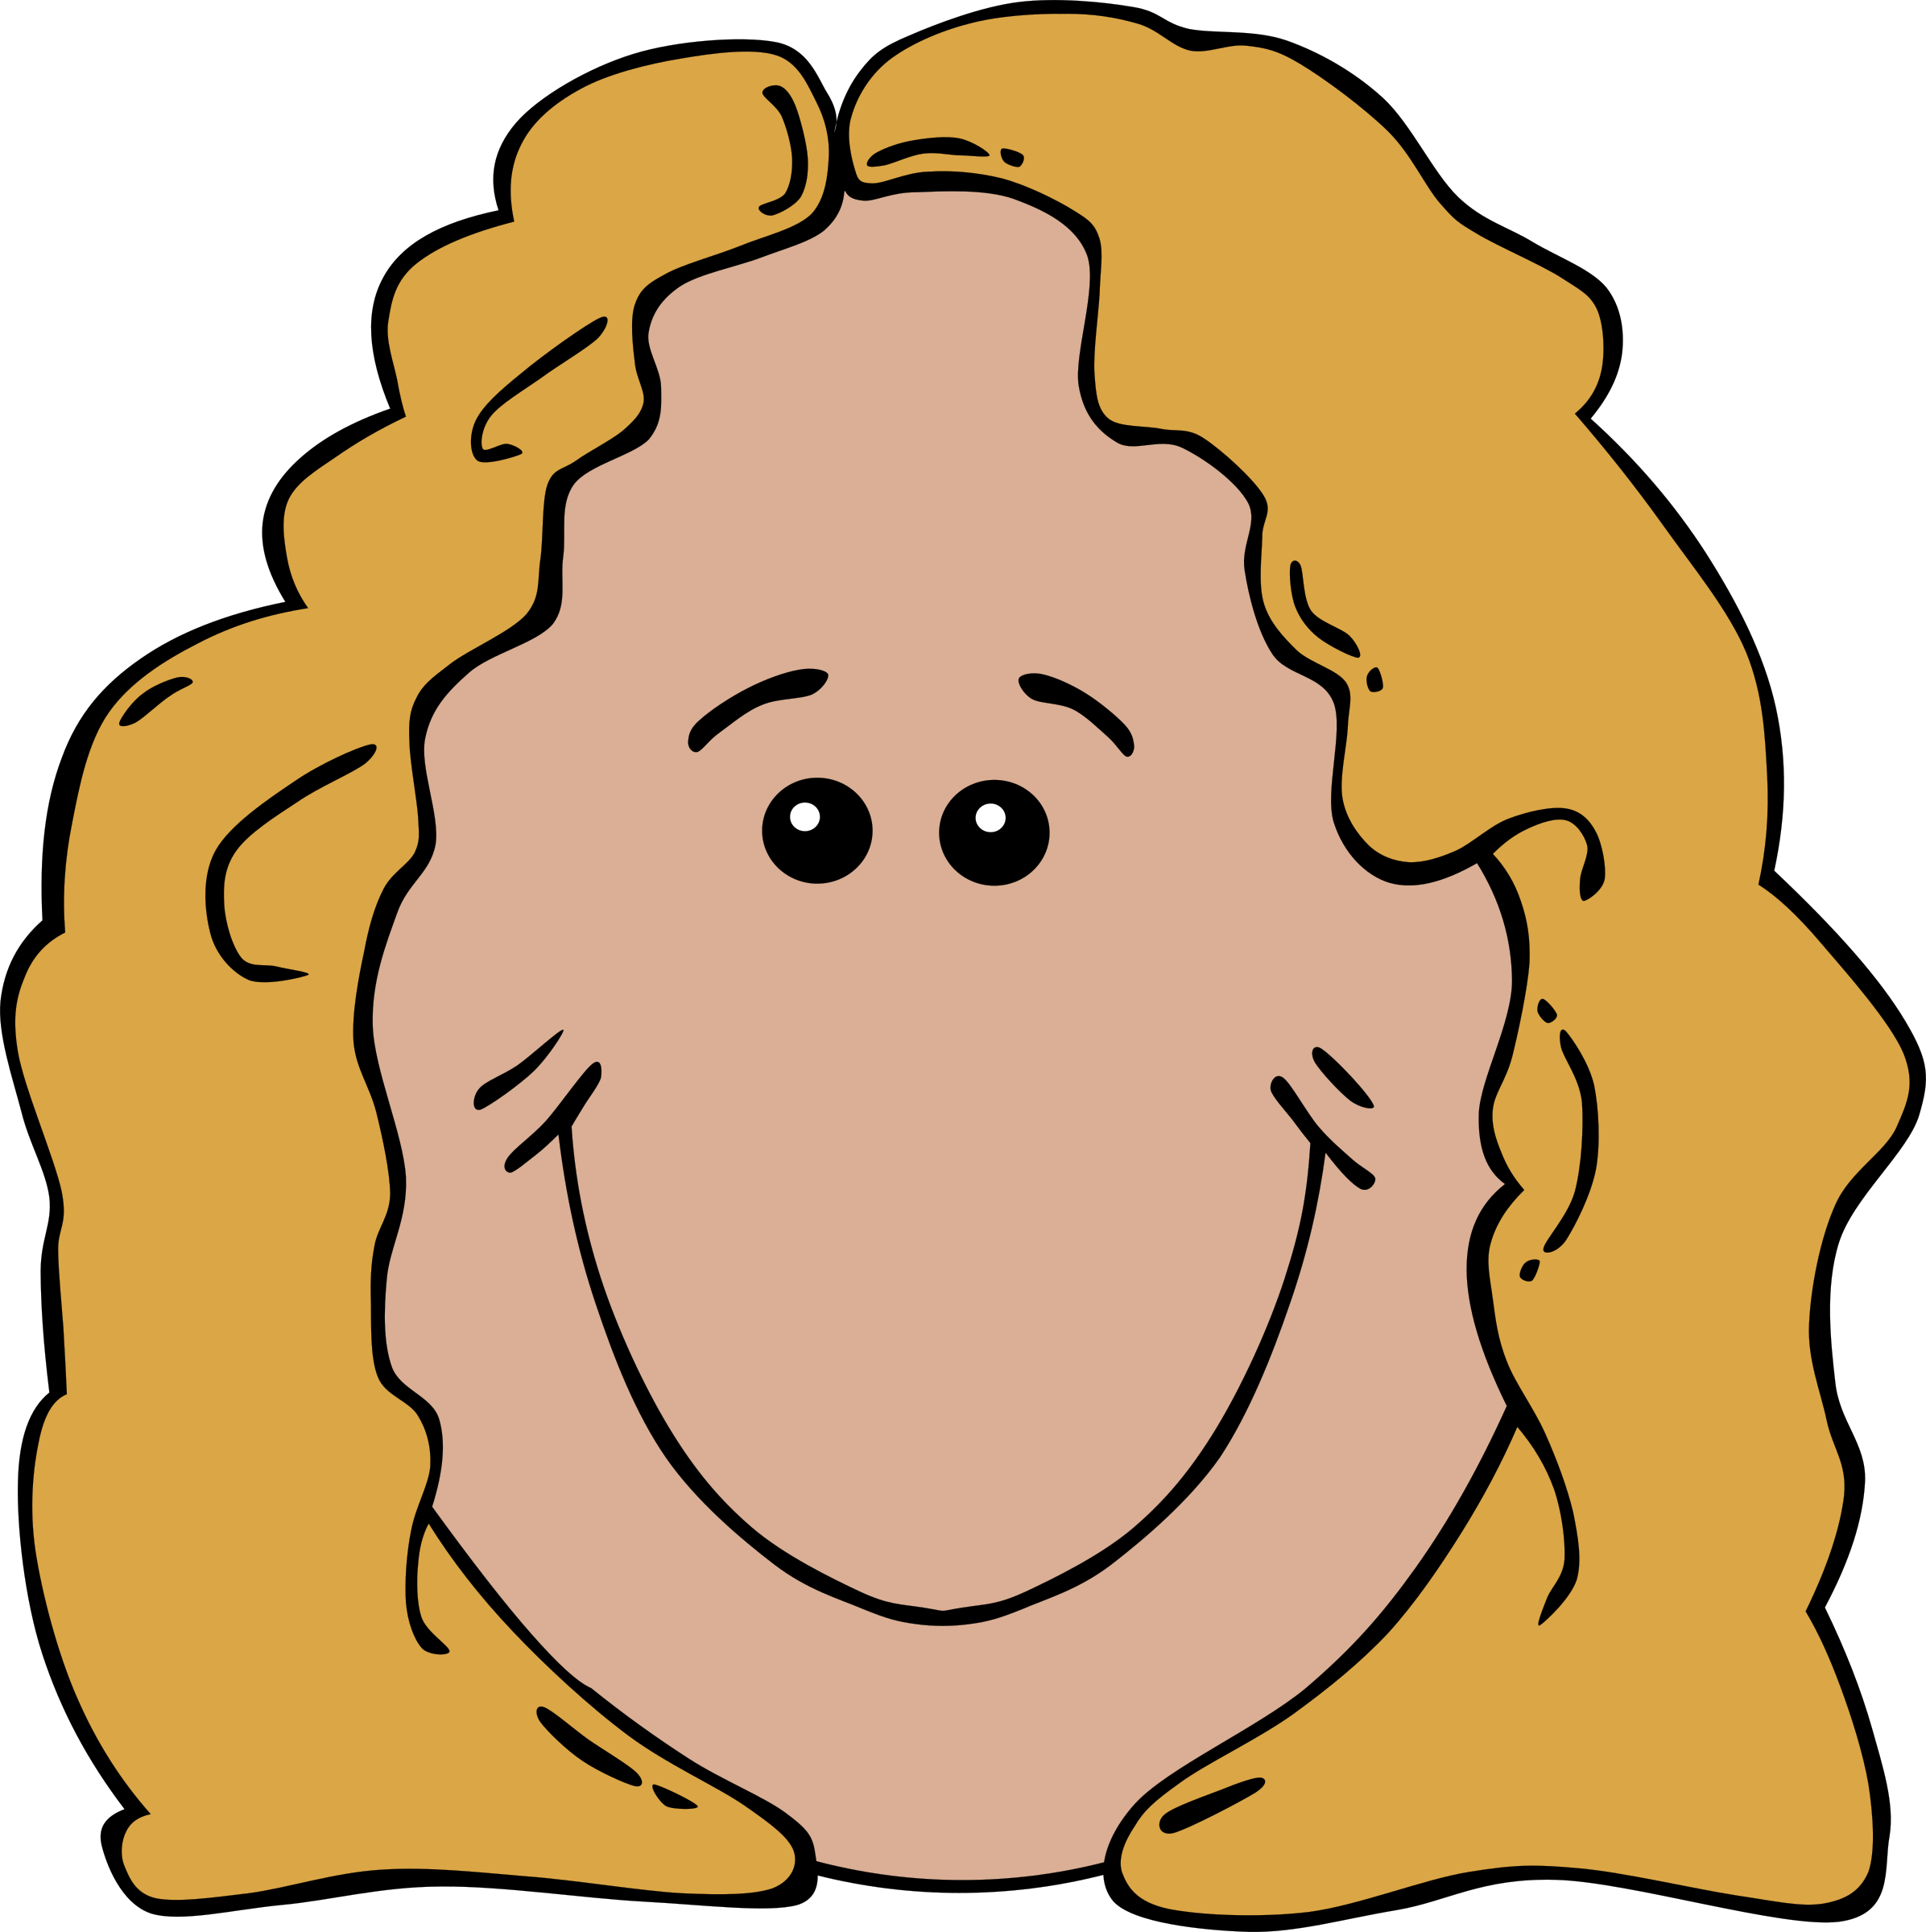 Aunt clipart kind lady. Face cartoon big image